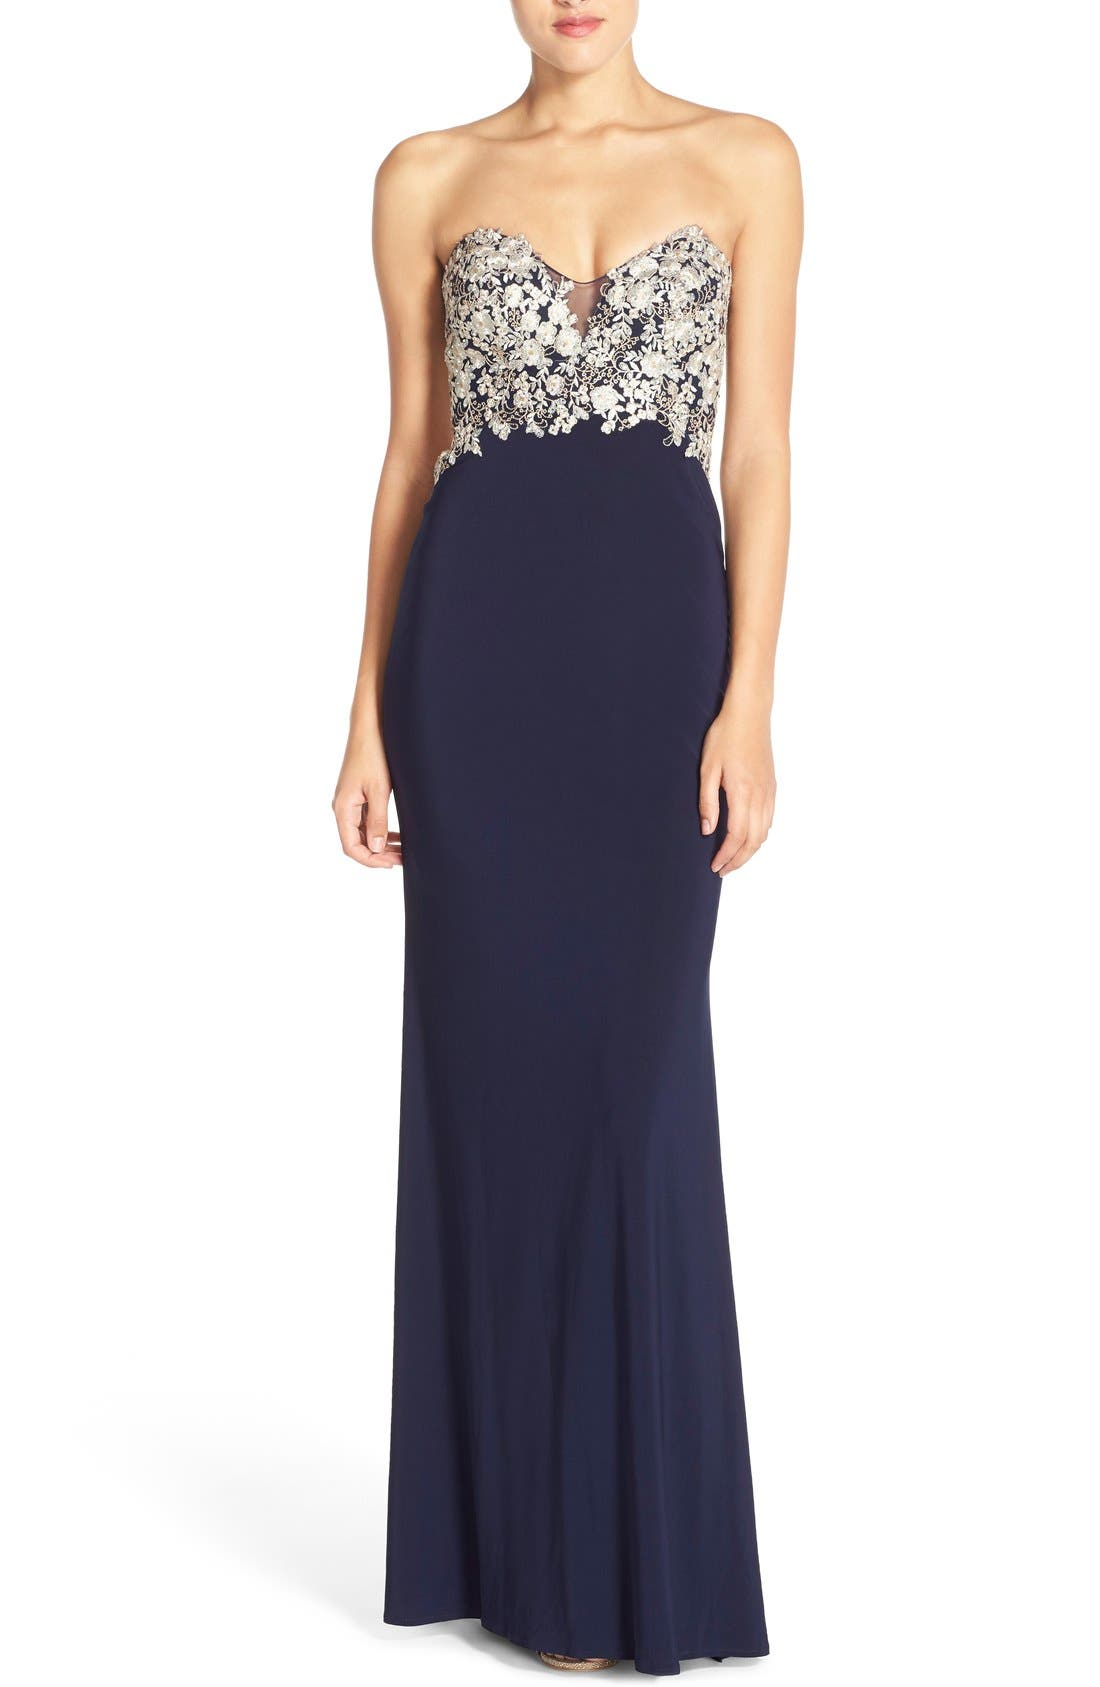 Alternate Image 1 Selected - Faviana Embroidered Strapless Jersey Gown